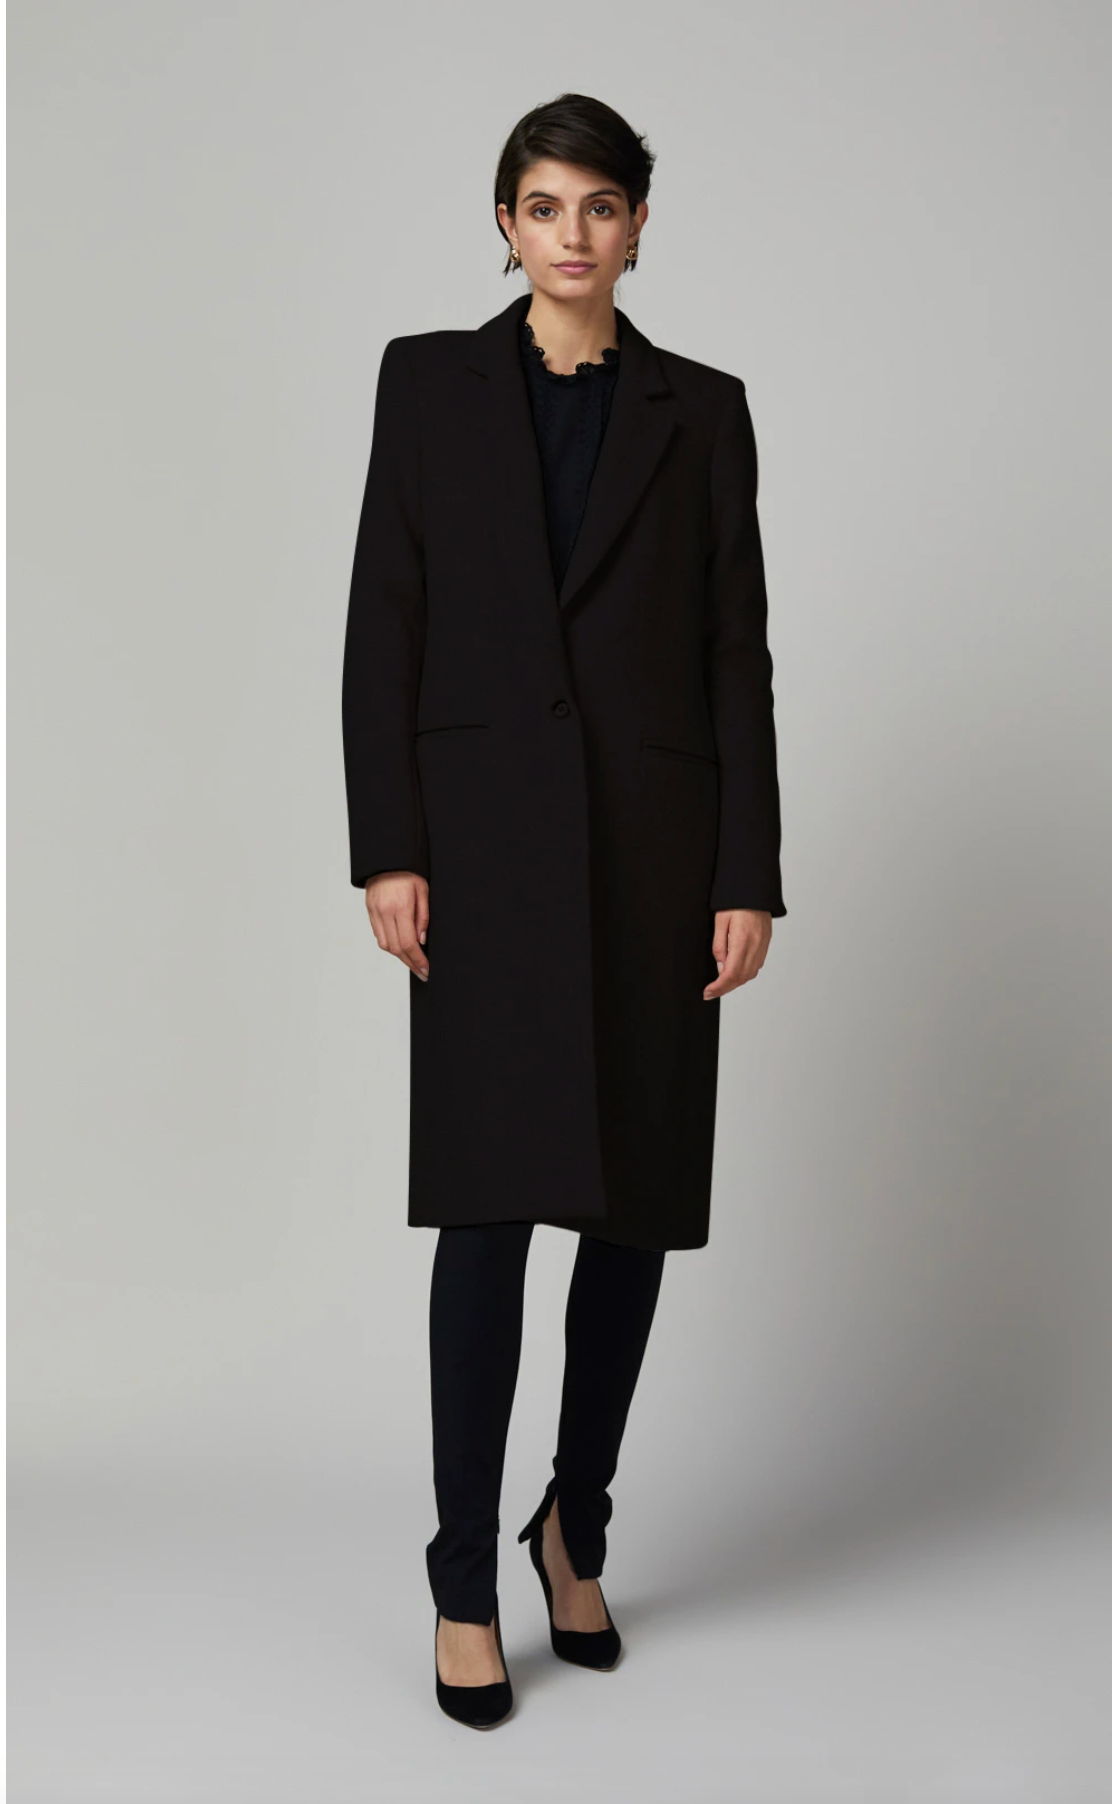 Bec & Bridge Hailey Coat - Black